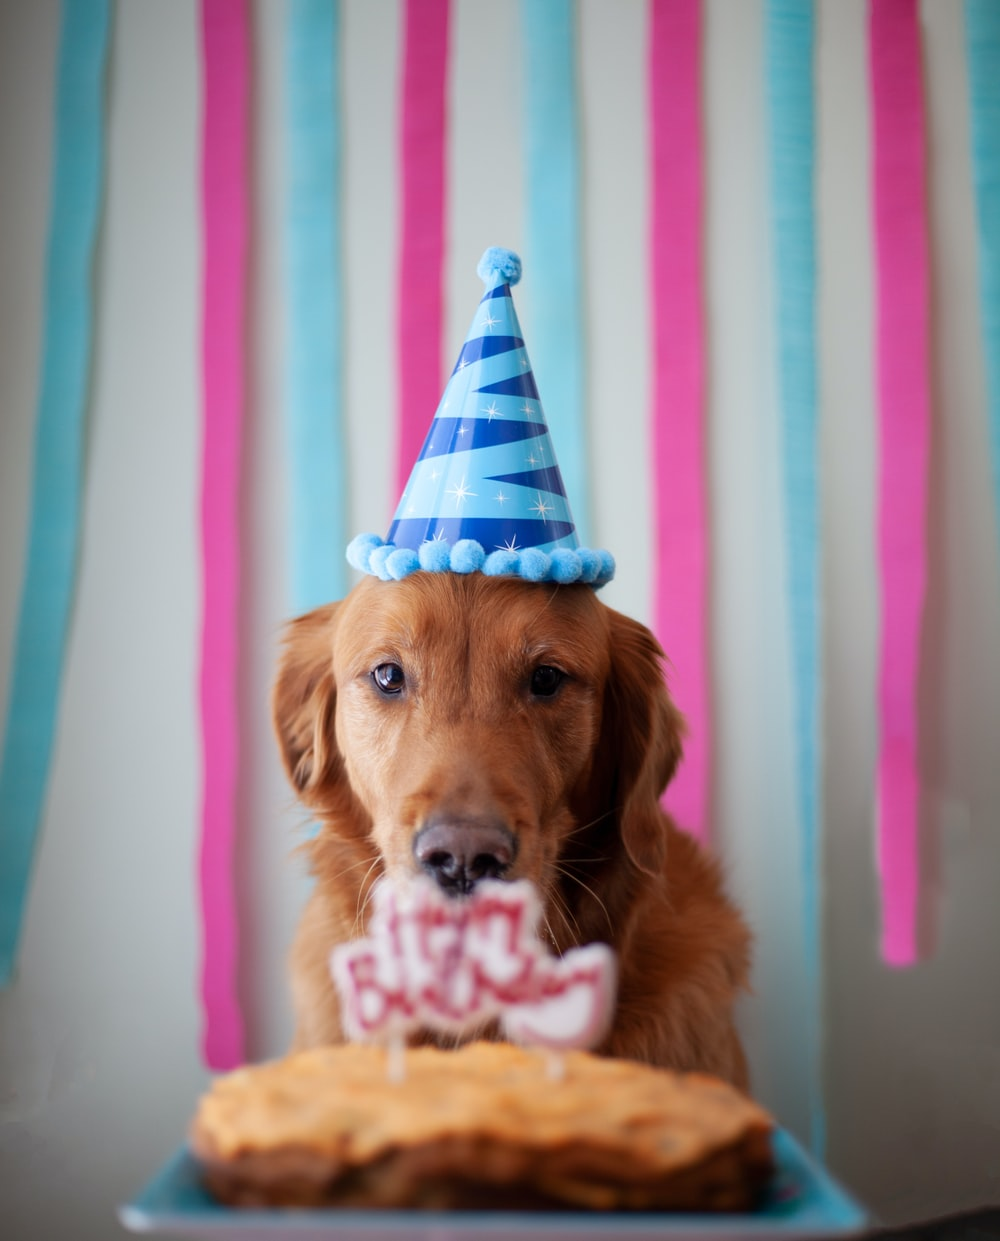 brown short coated dog wearing blue and white striped hat